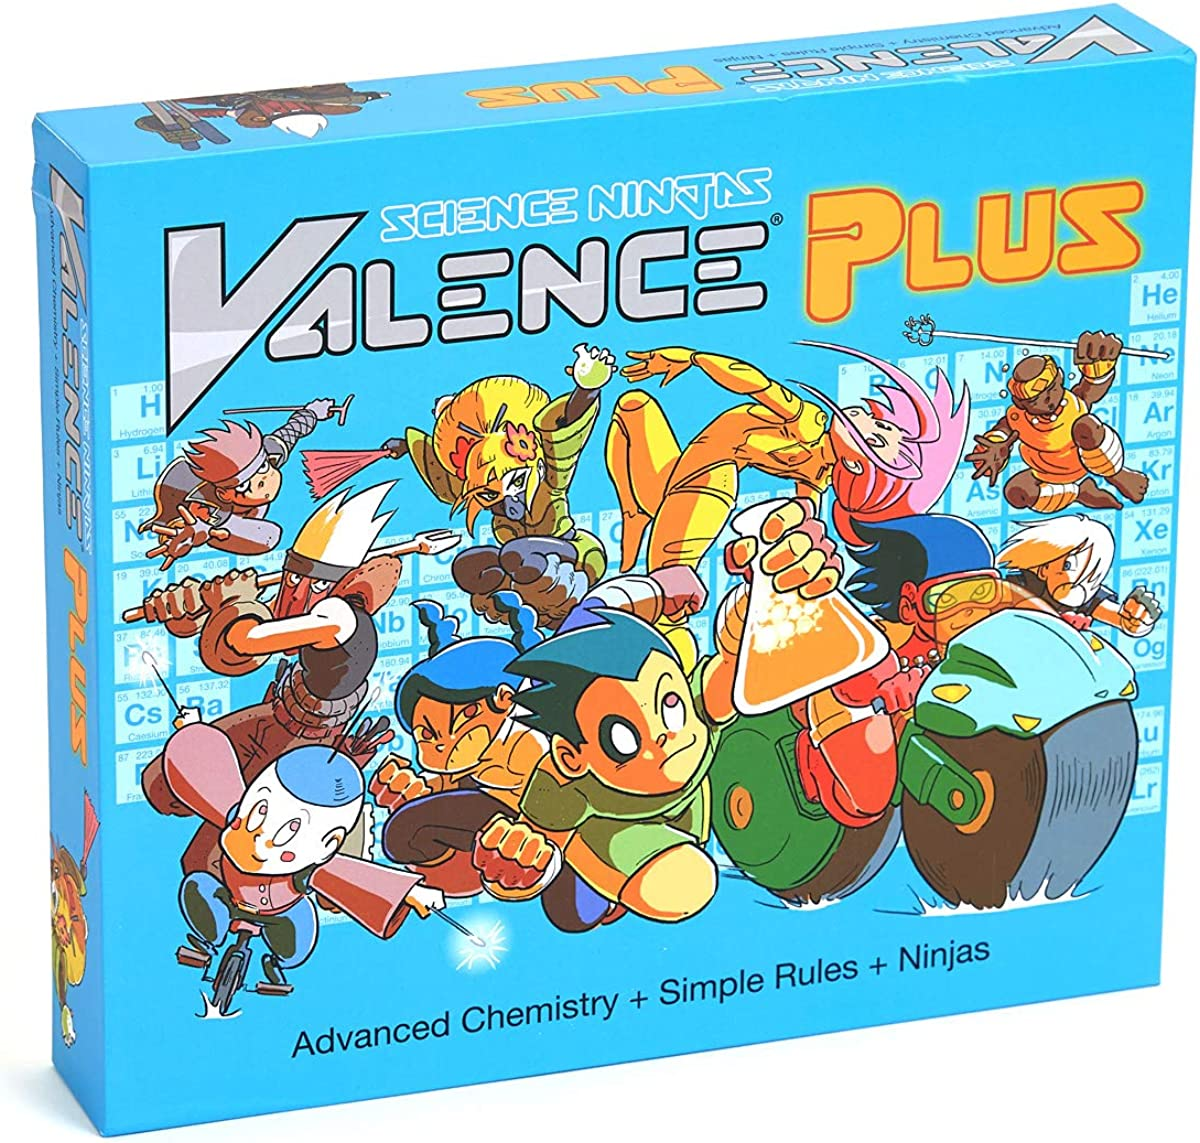 Valence Plus - Use Real Chemistry to Break Down Your Opponents' Molecules!